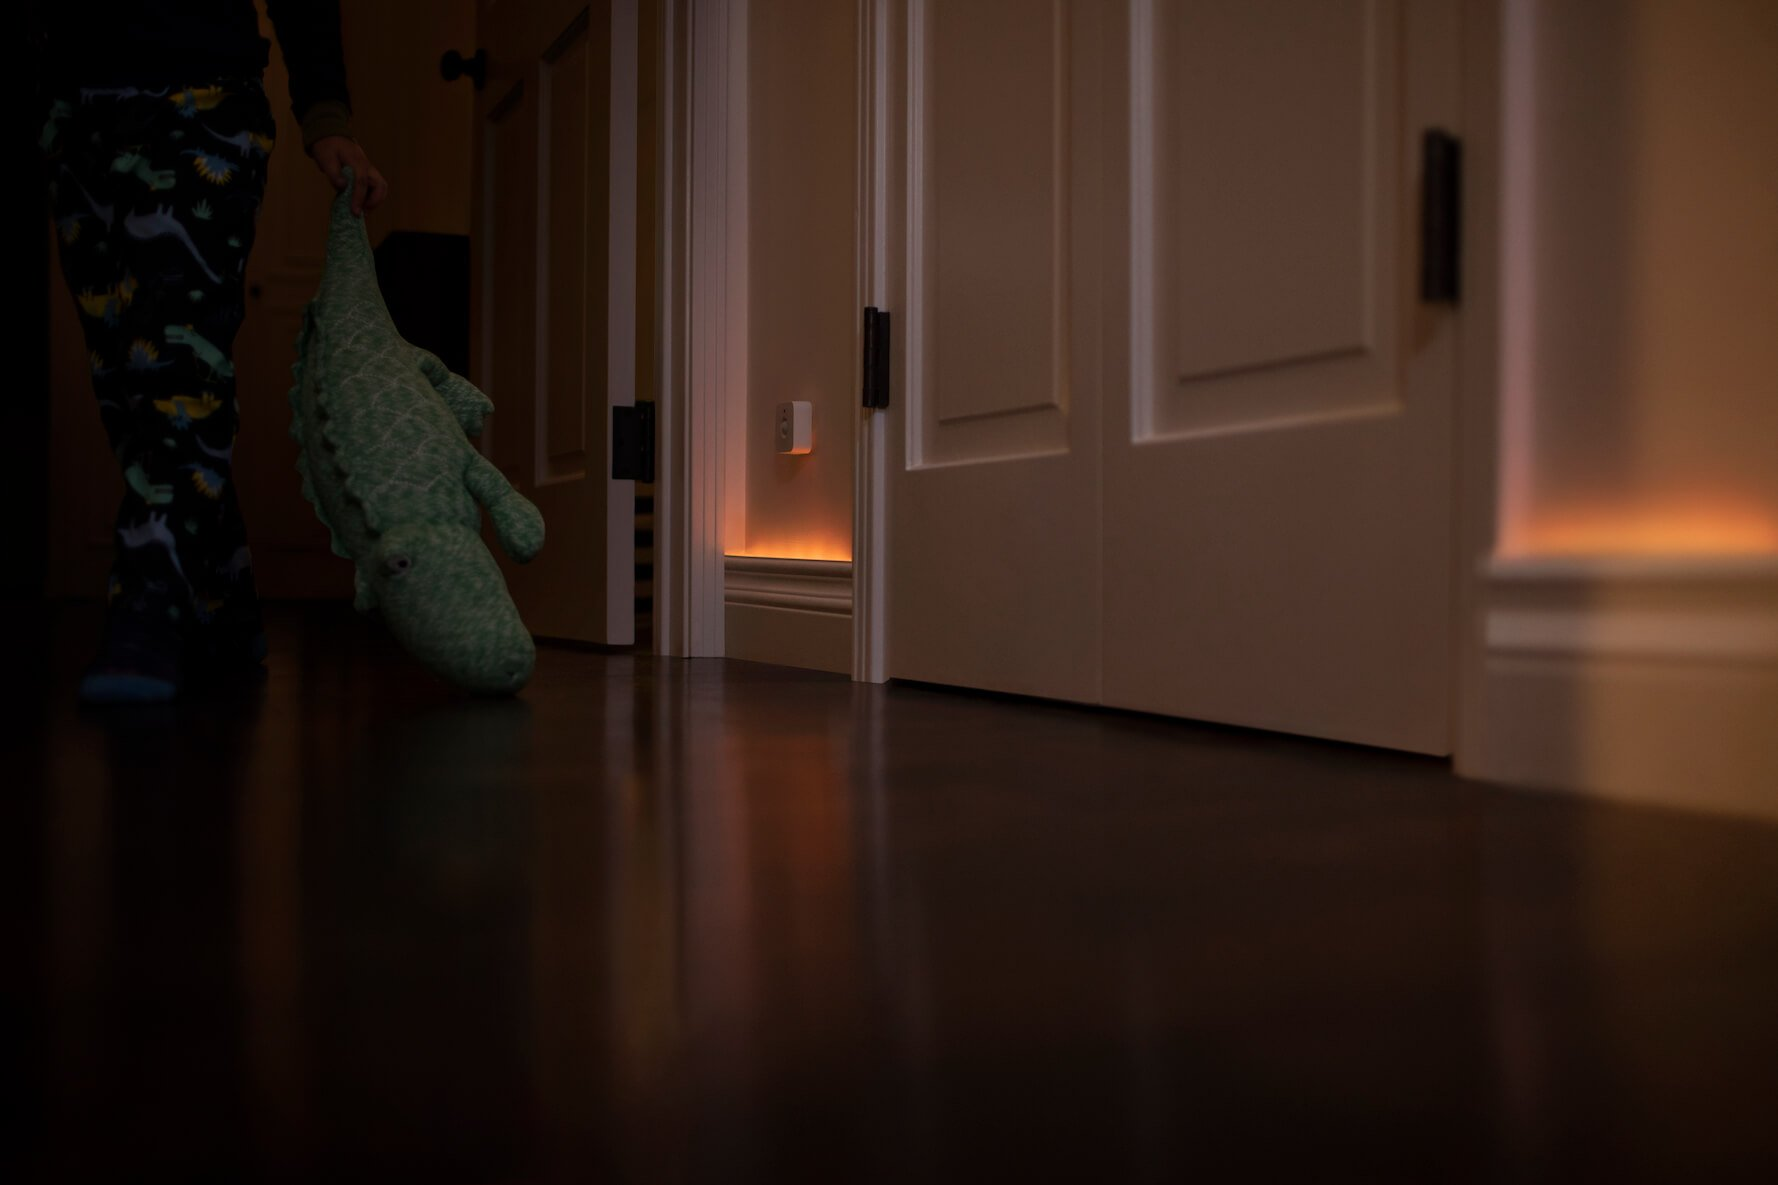 Hallway lighting activated by Hue Motion sensor